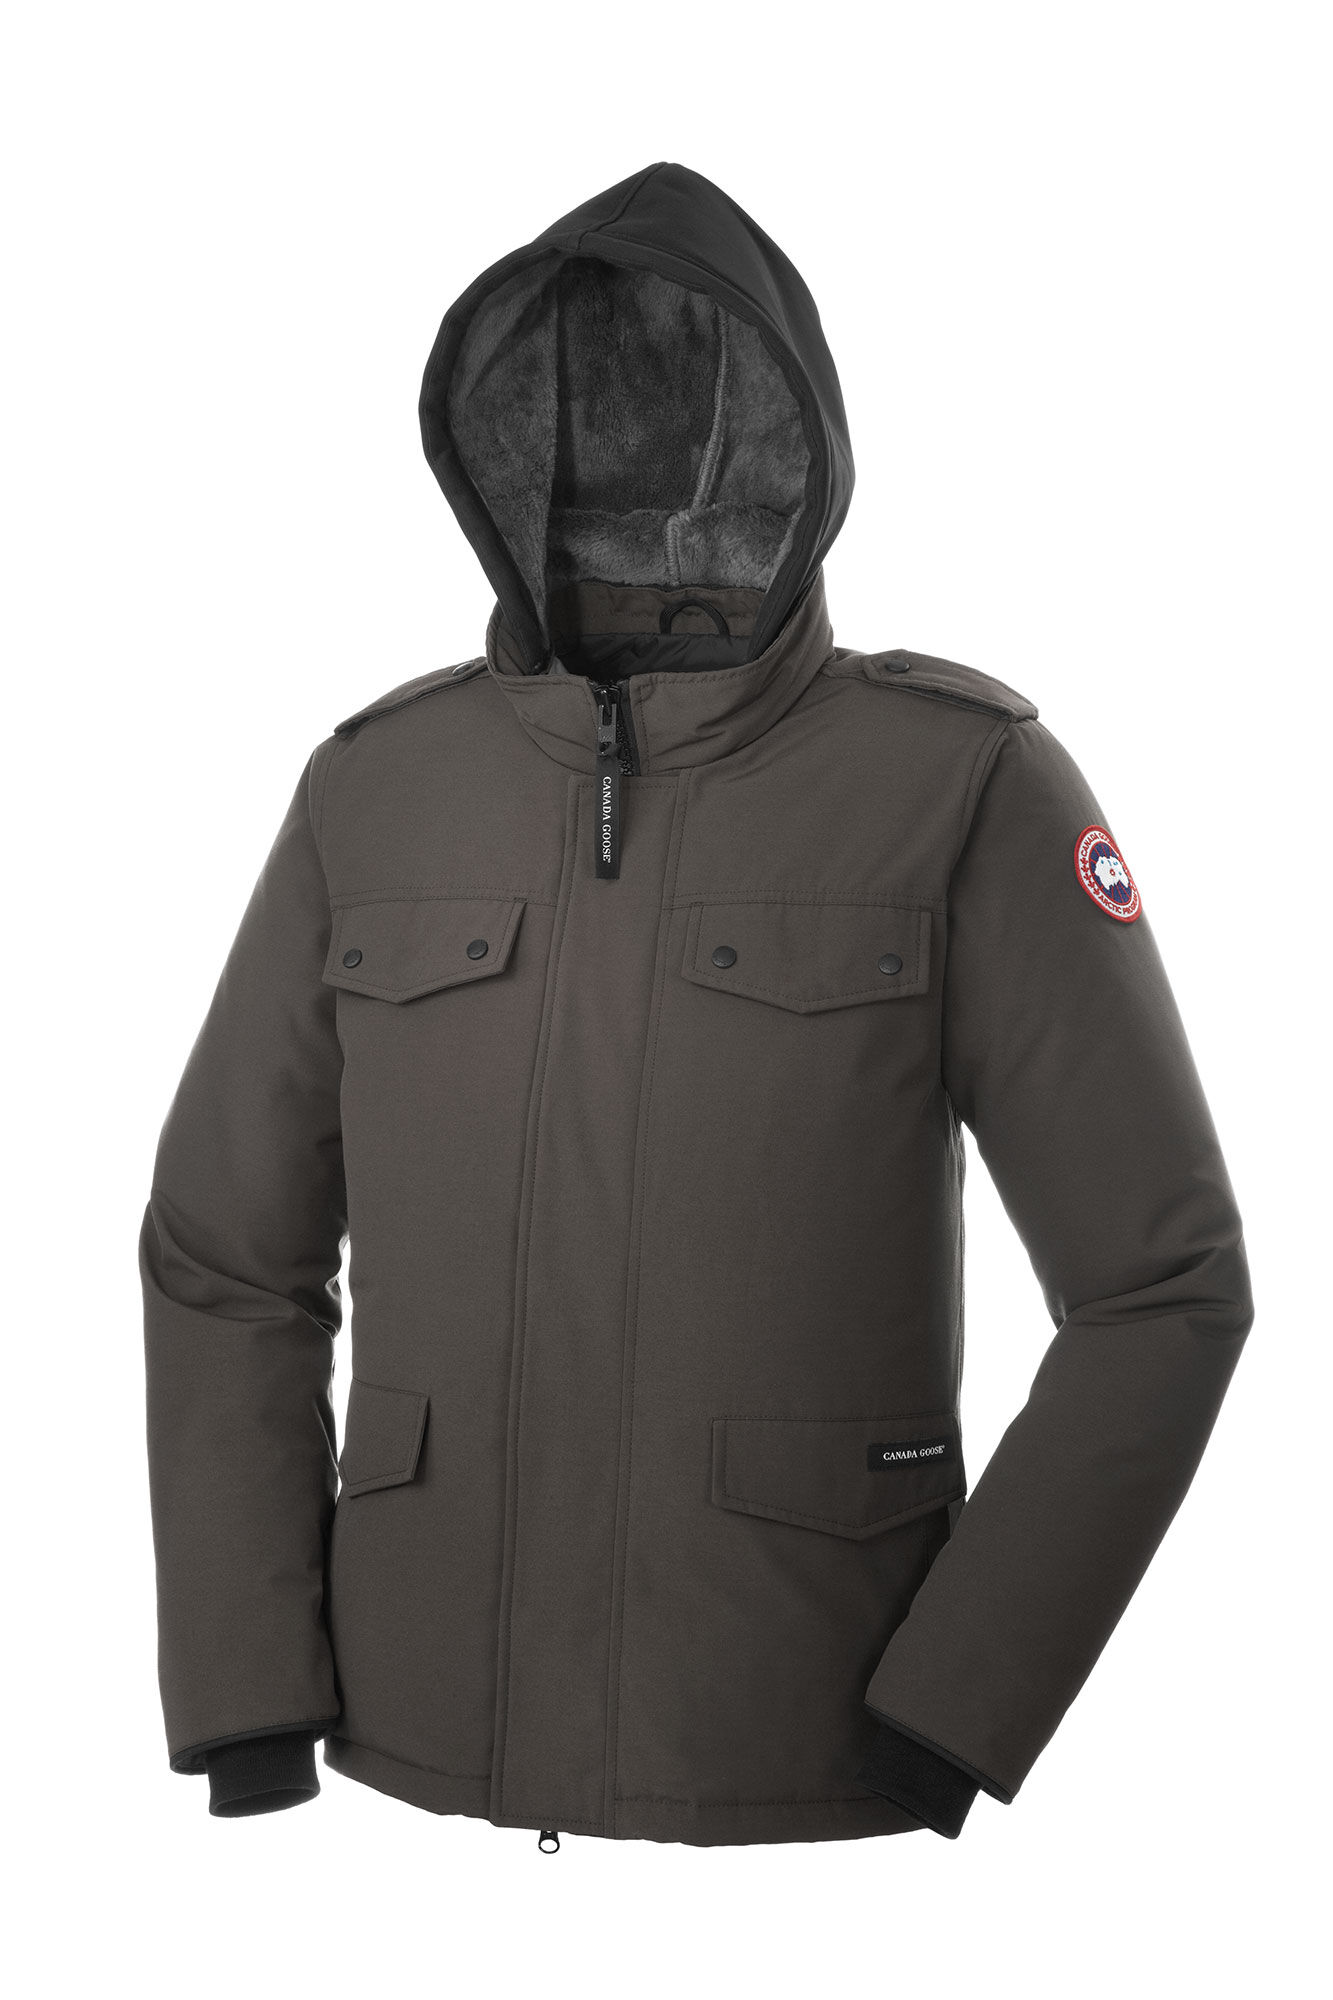 Canada Goose hats replica authentic - Men's Parkas | Expedition | Mountaineer | Canada Goose?